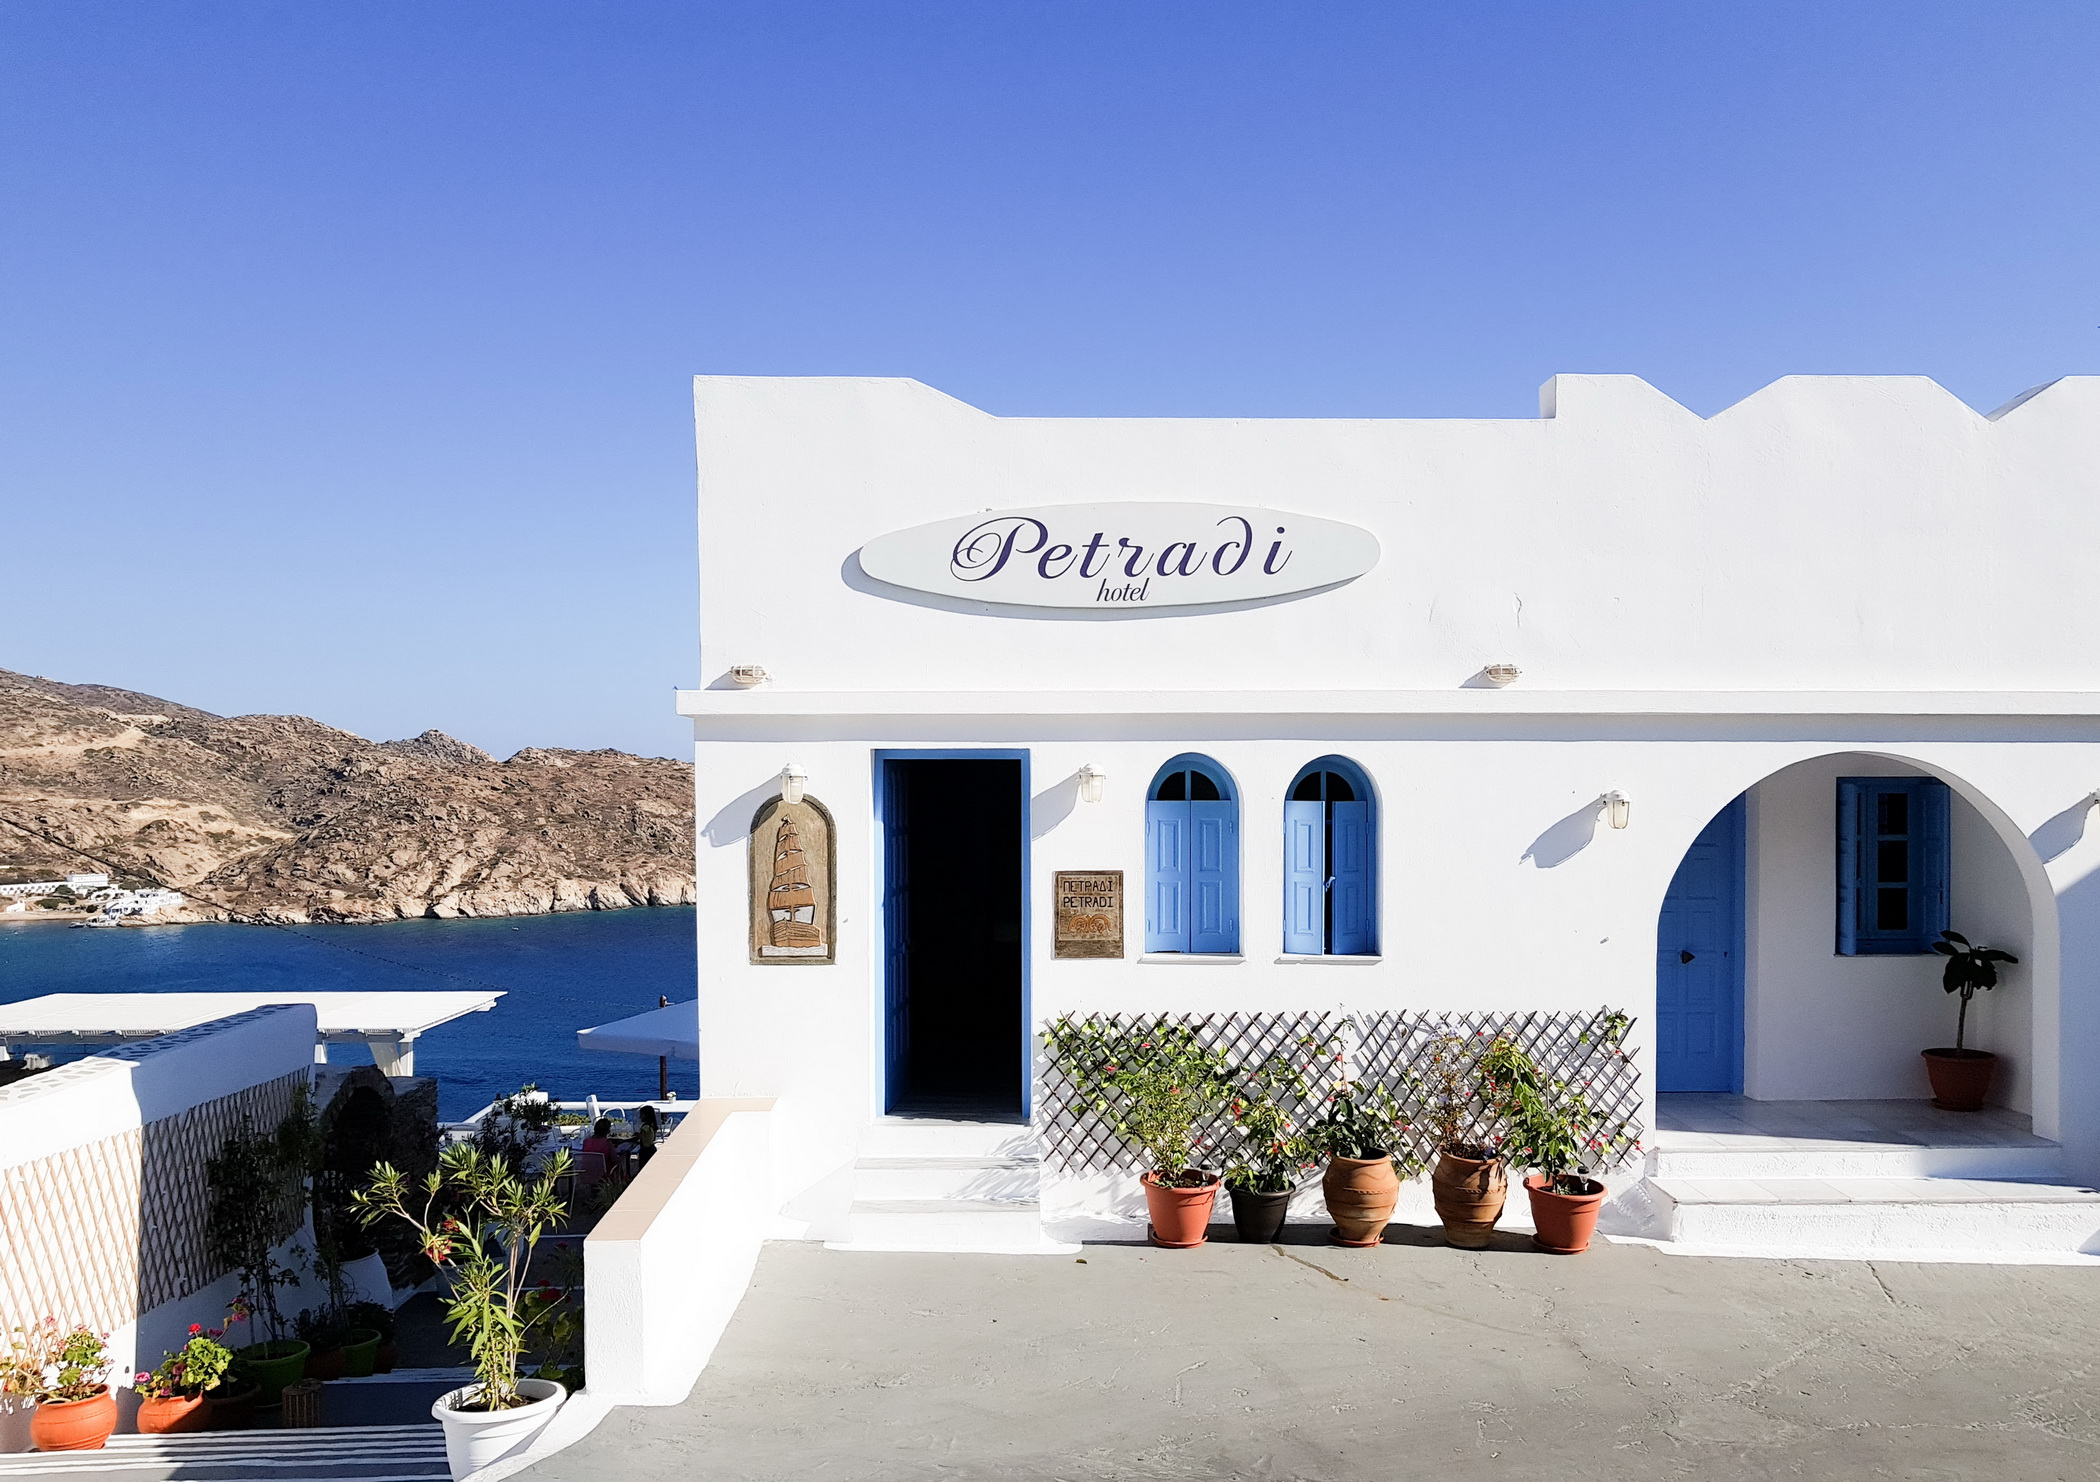 Petradi Hotel Ios Island Greece (4)